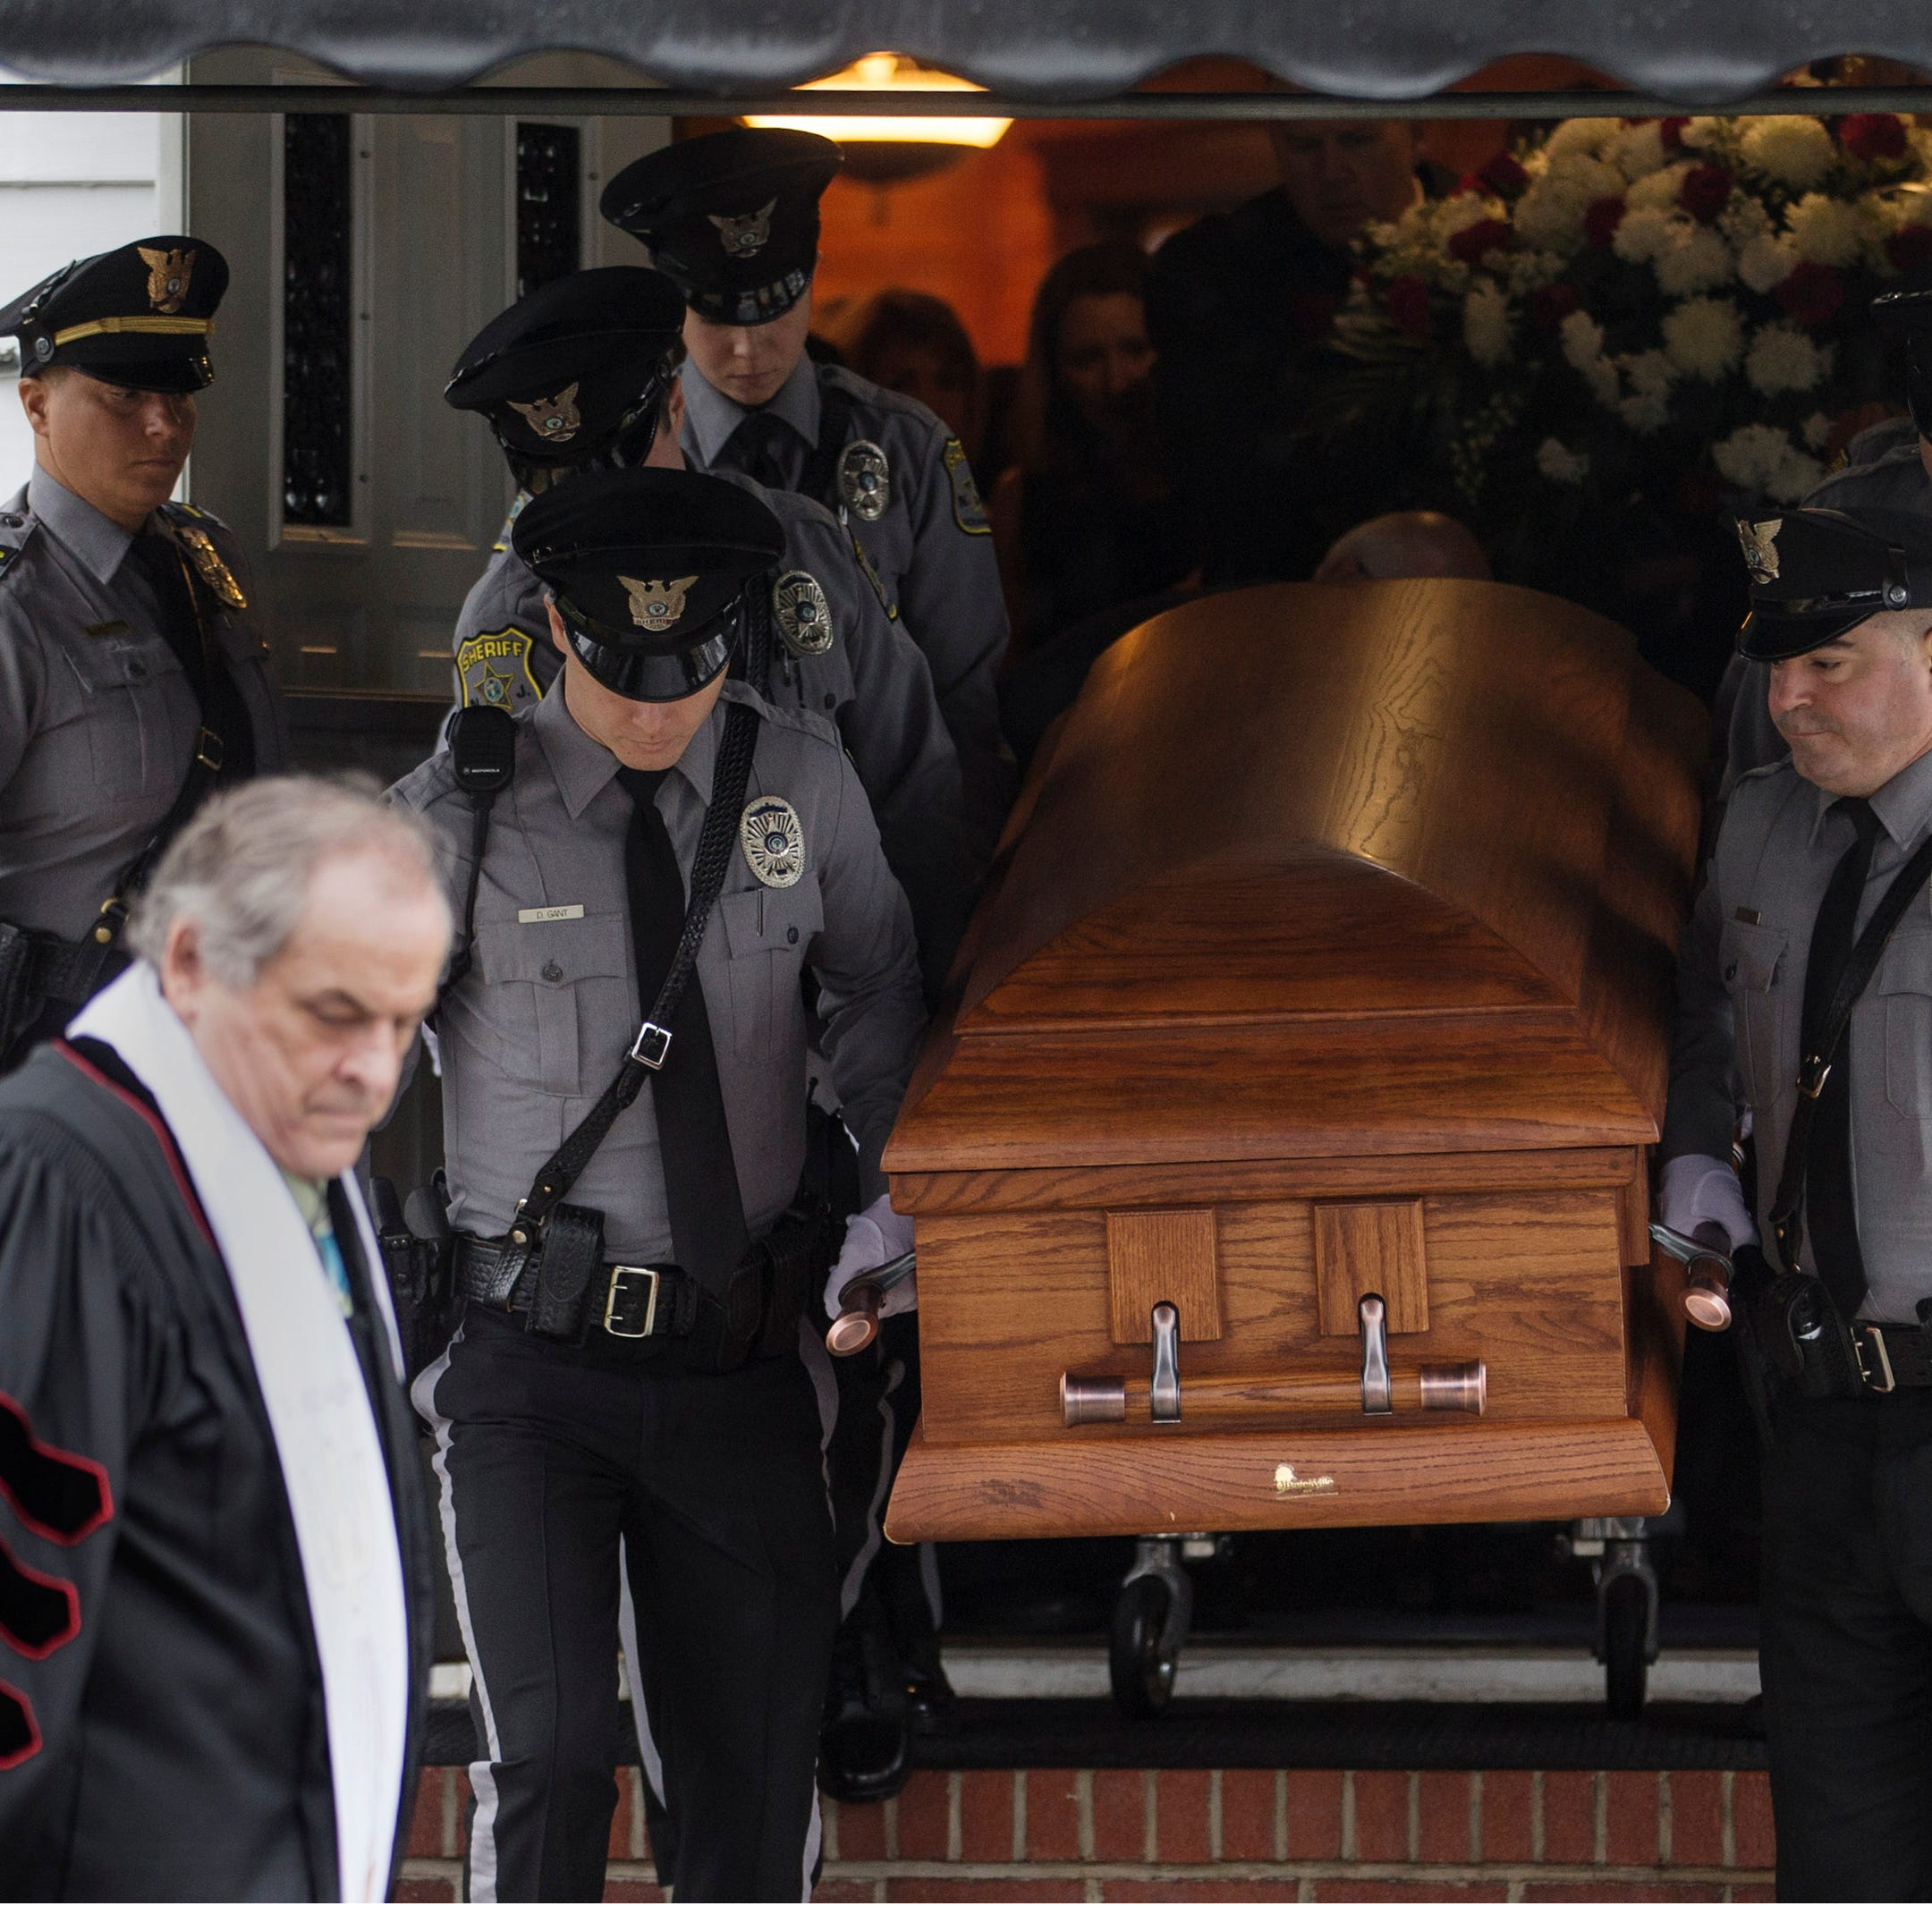 Freeholder John C. Bartlett's last request: 'Take care of your mother'